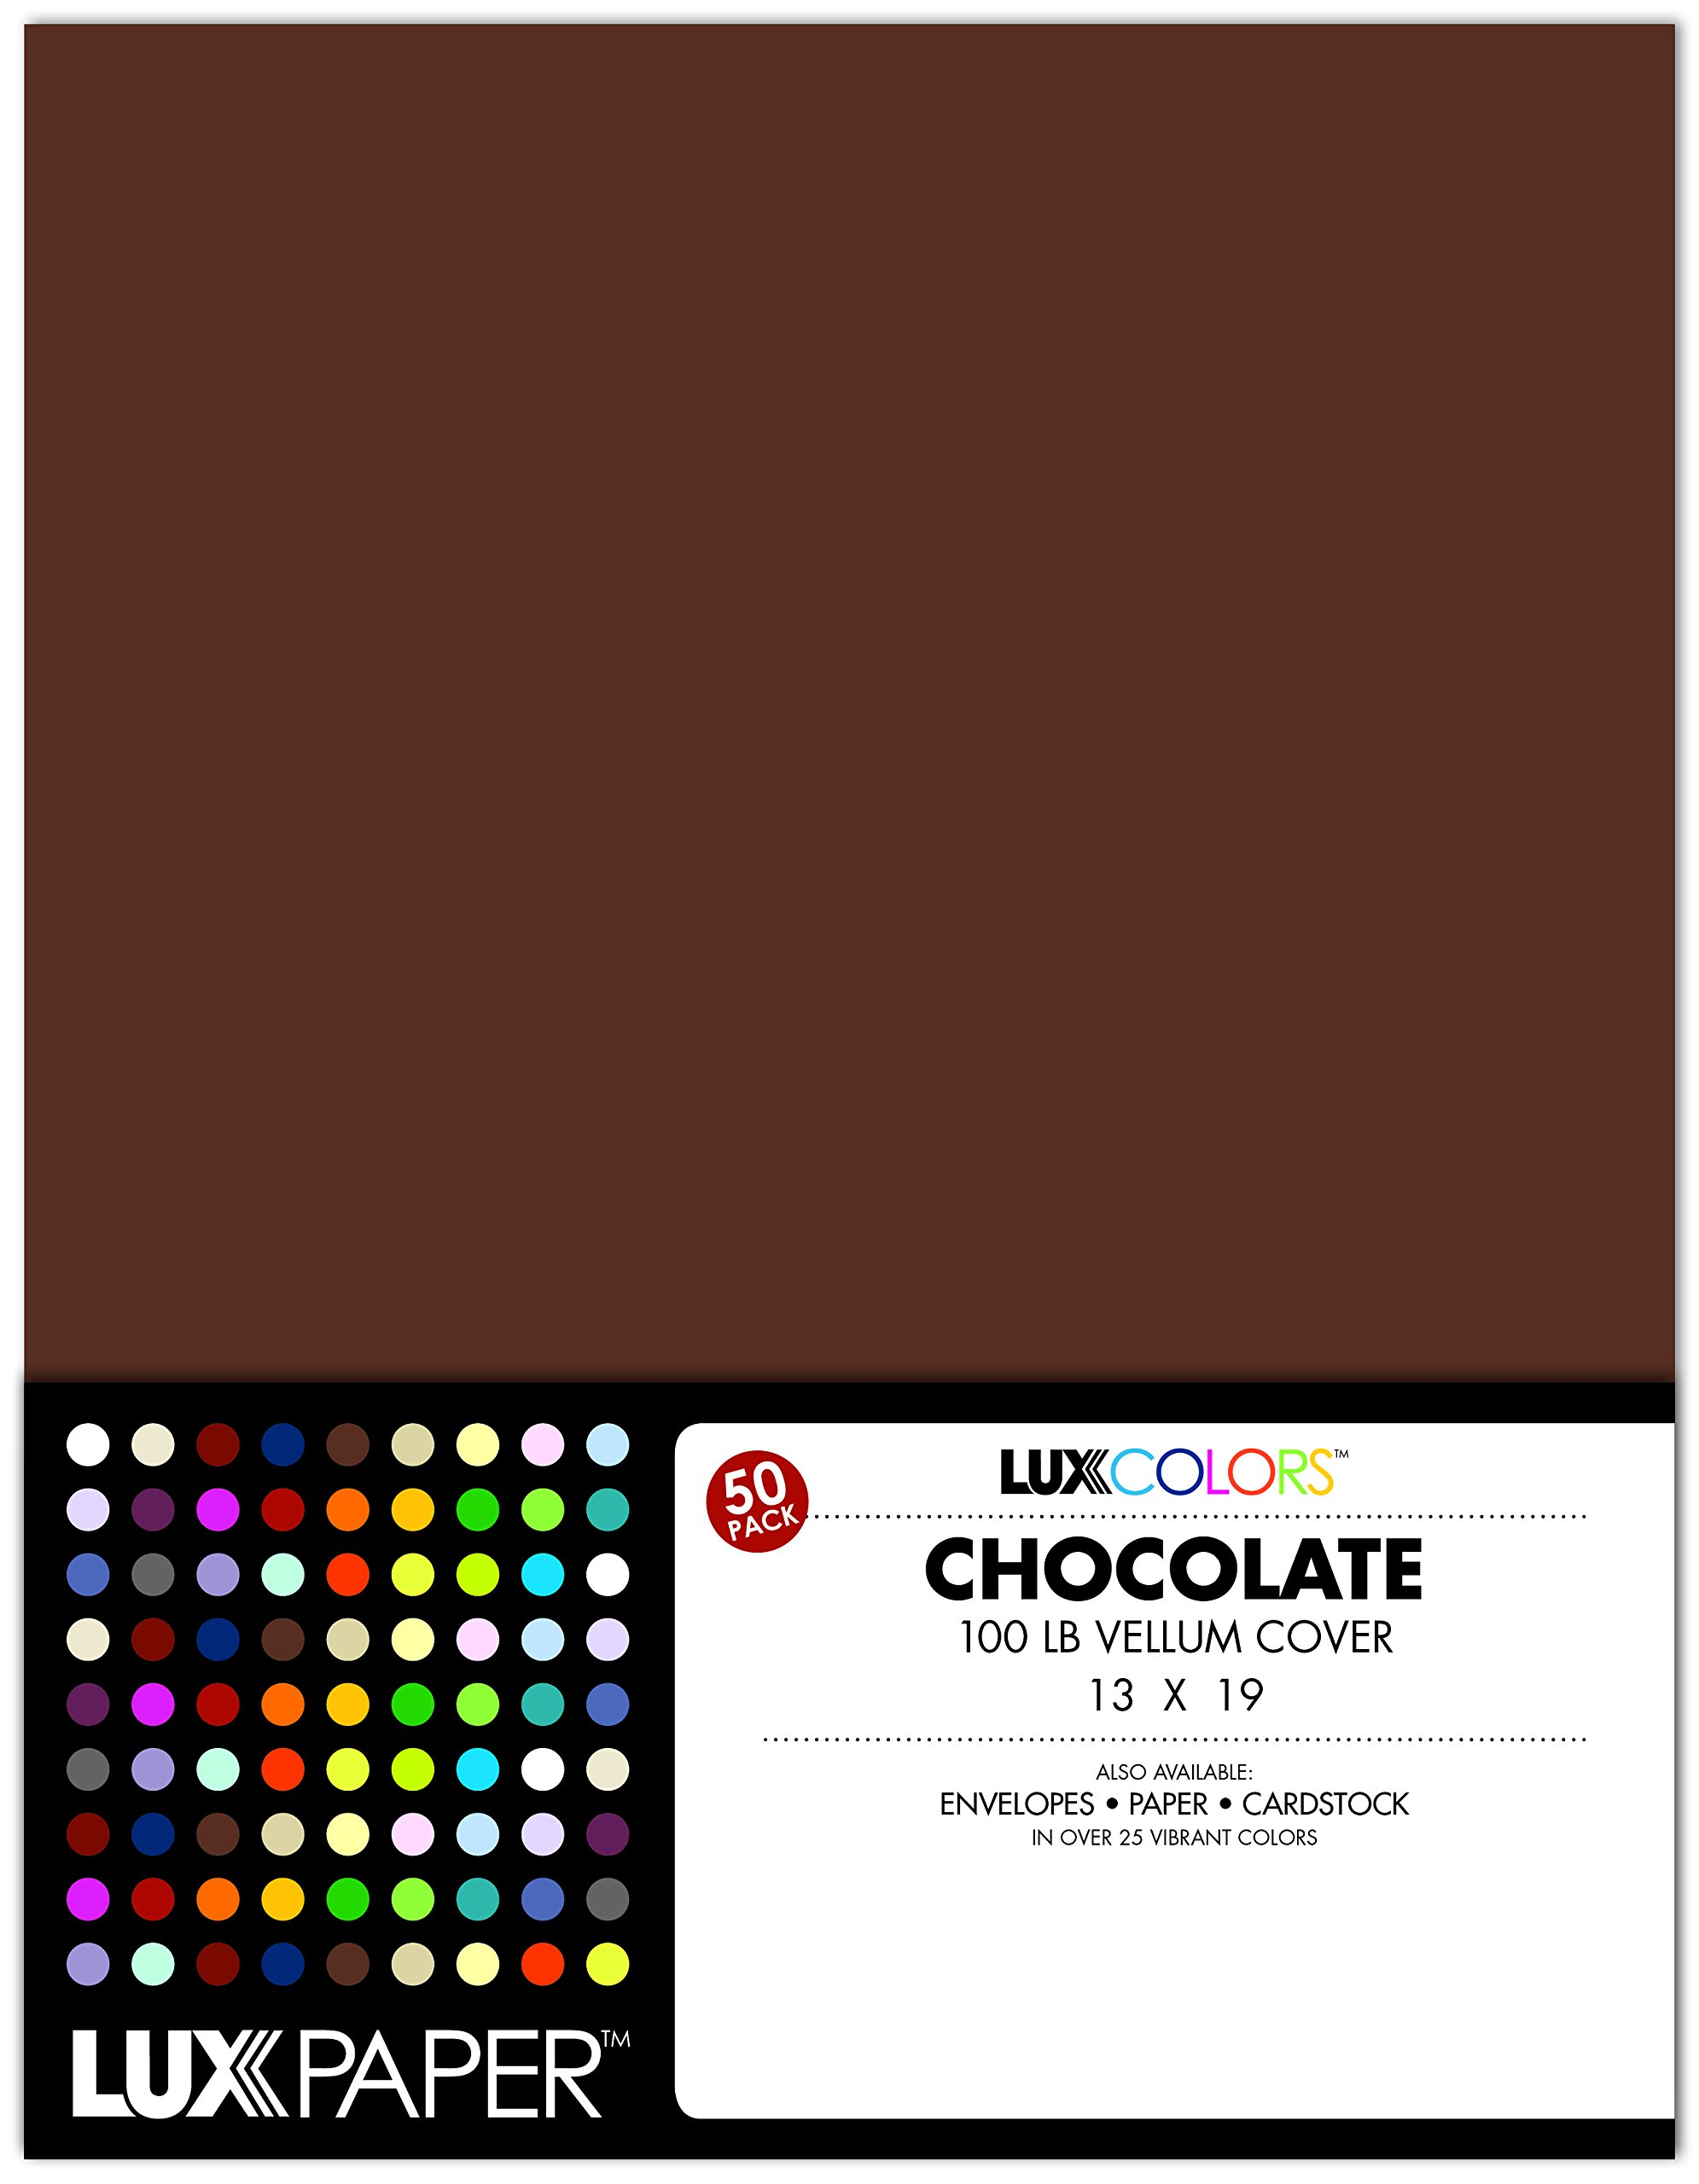 13 x 19 Cardstock - Chocolate Brown (50 Qty.)